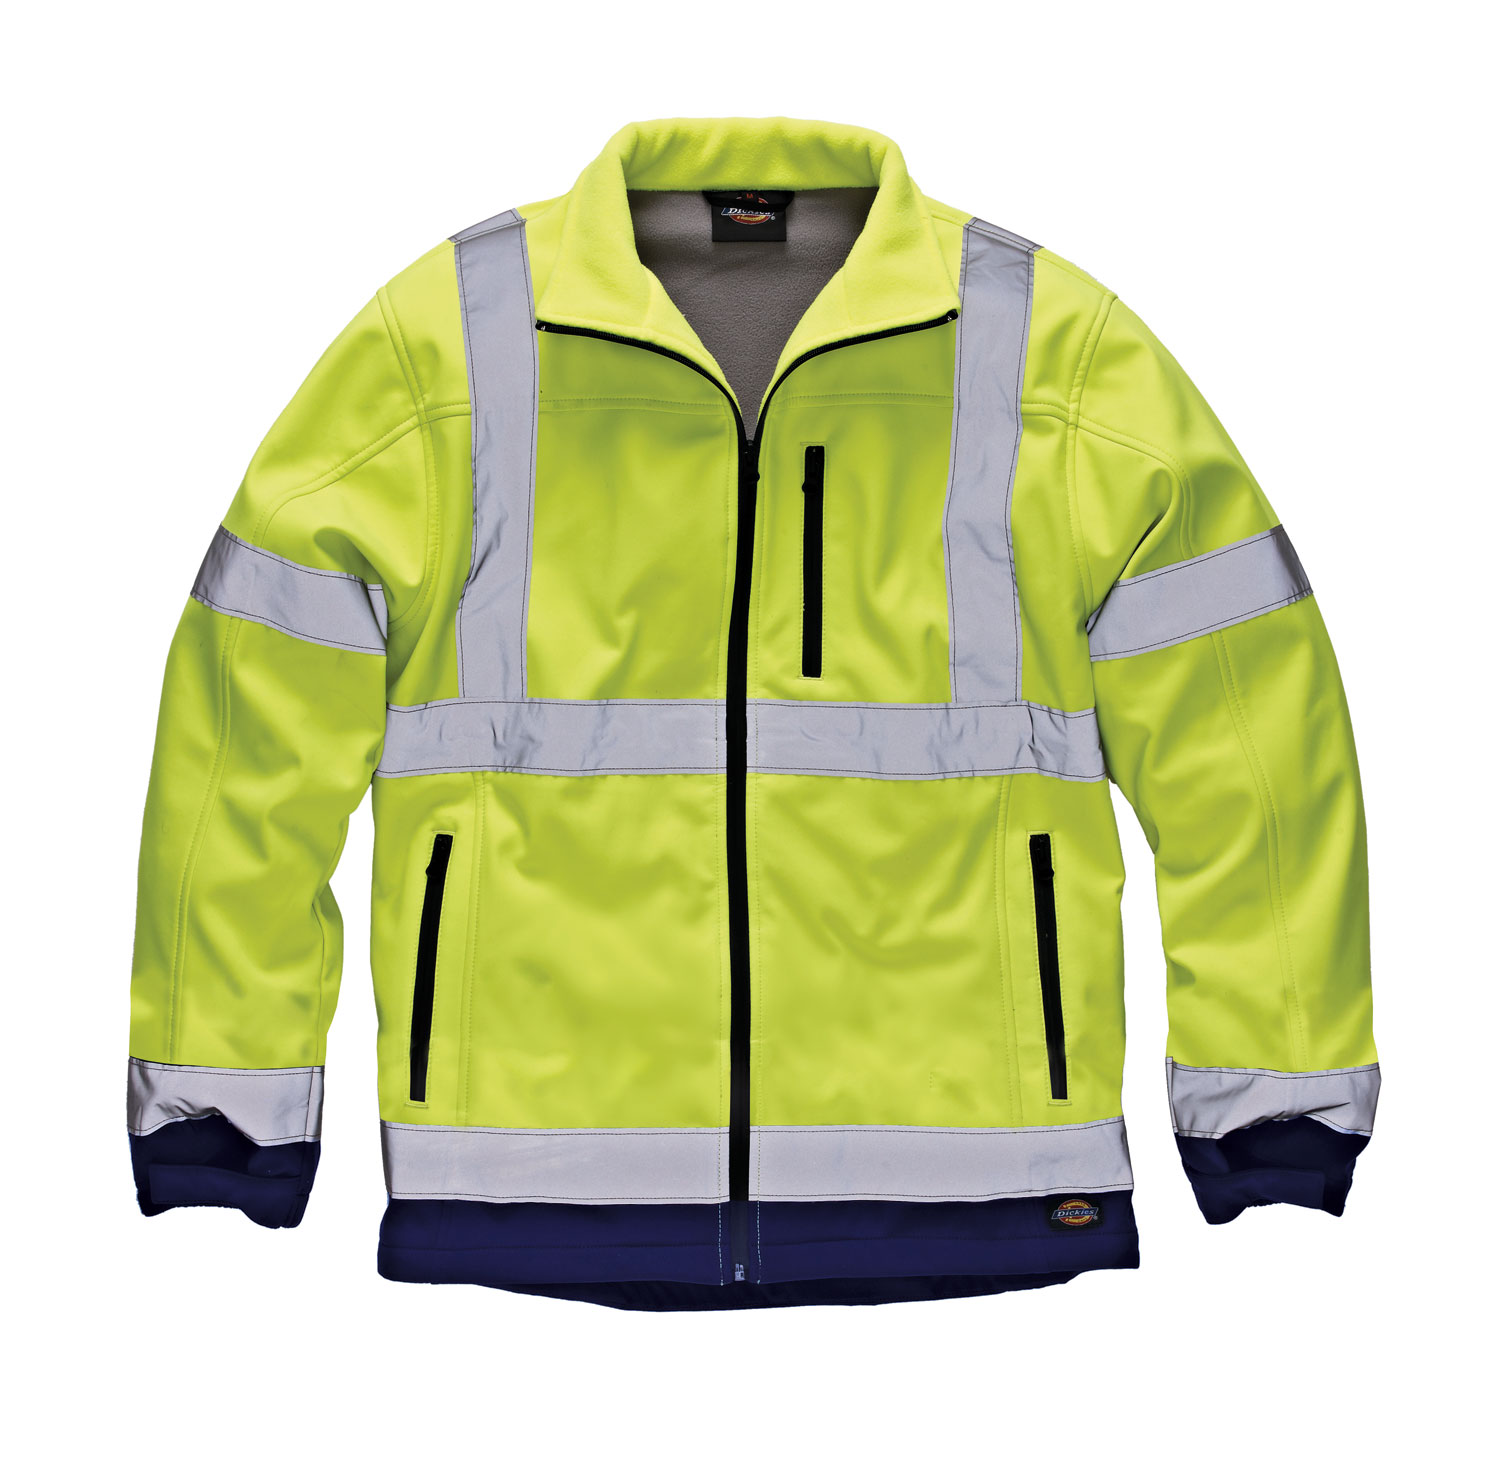 Dickies Hi-Vis Two Tone Soft Shell Jacket